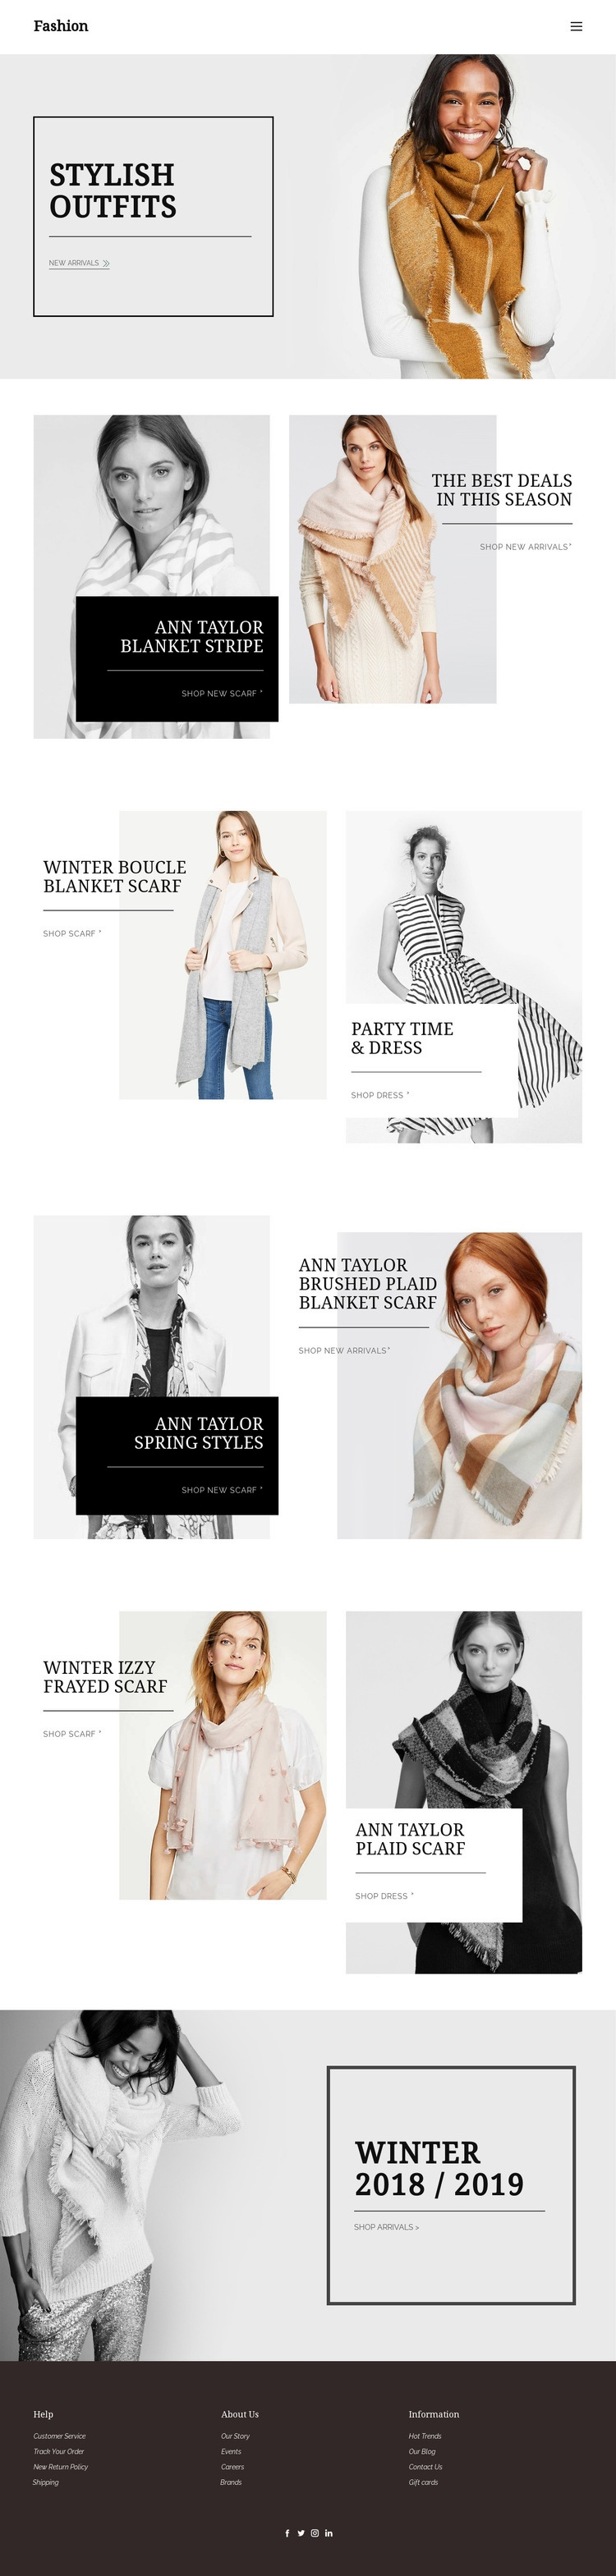 Personal shopper service Html Code Example